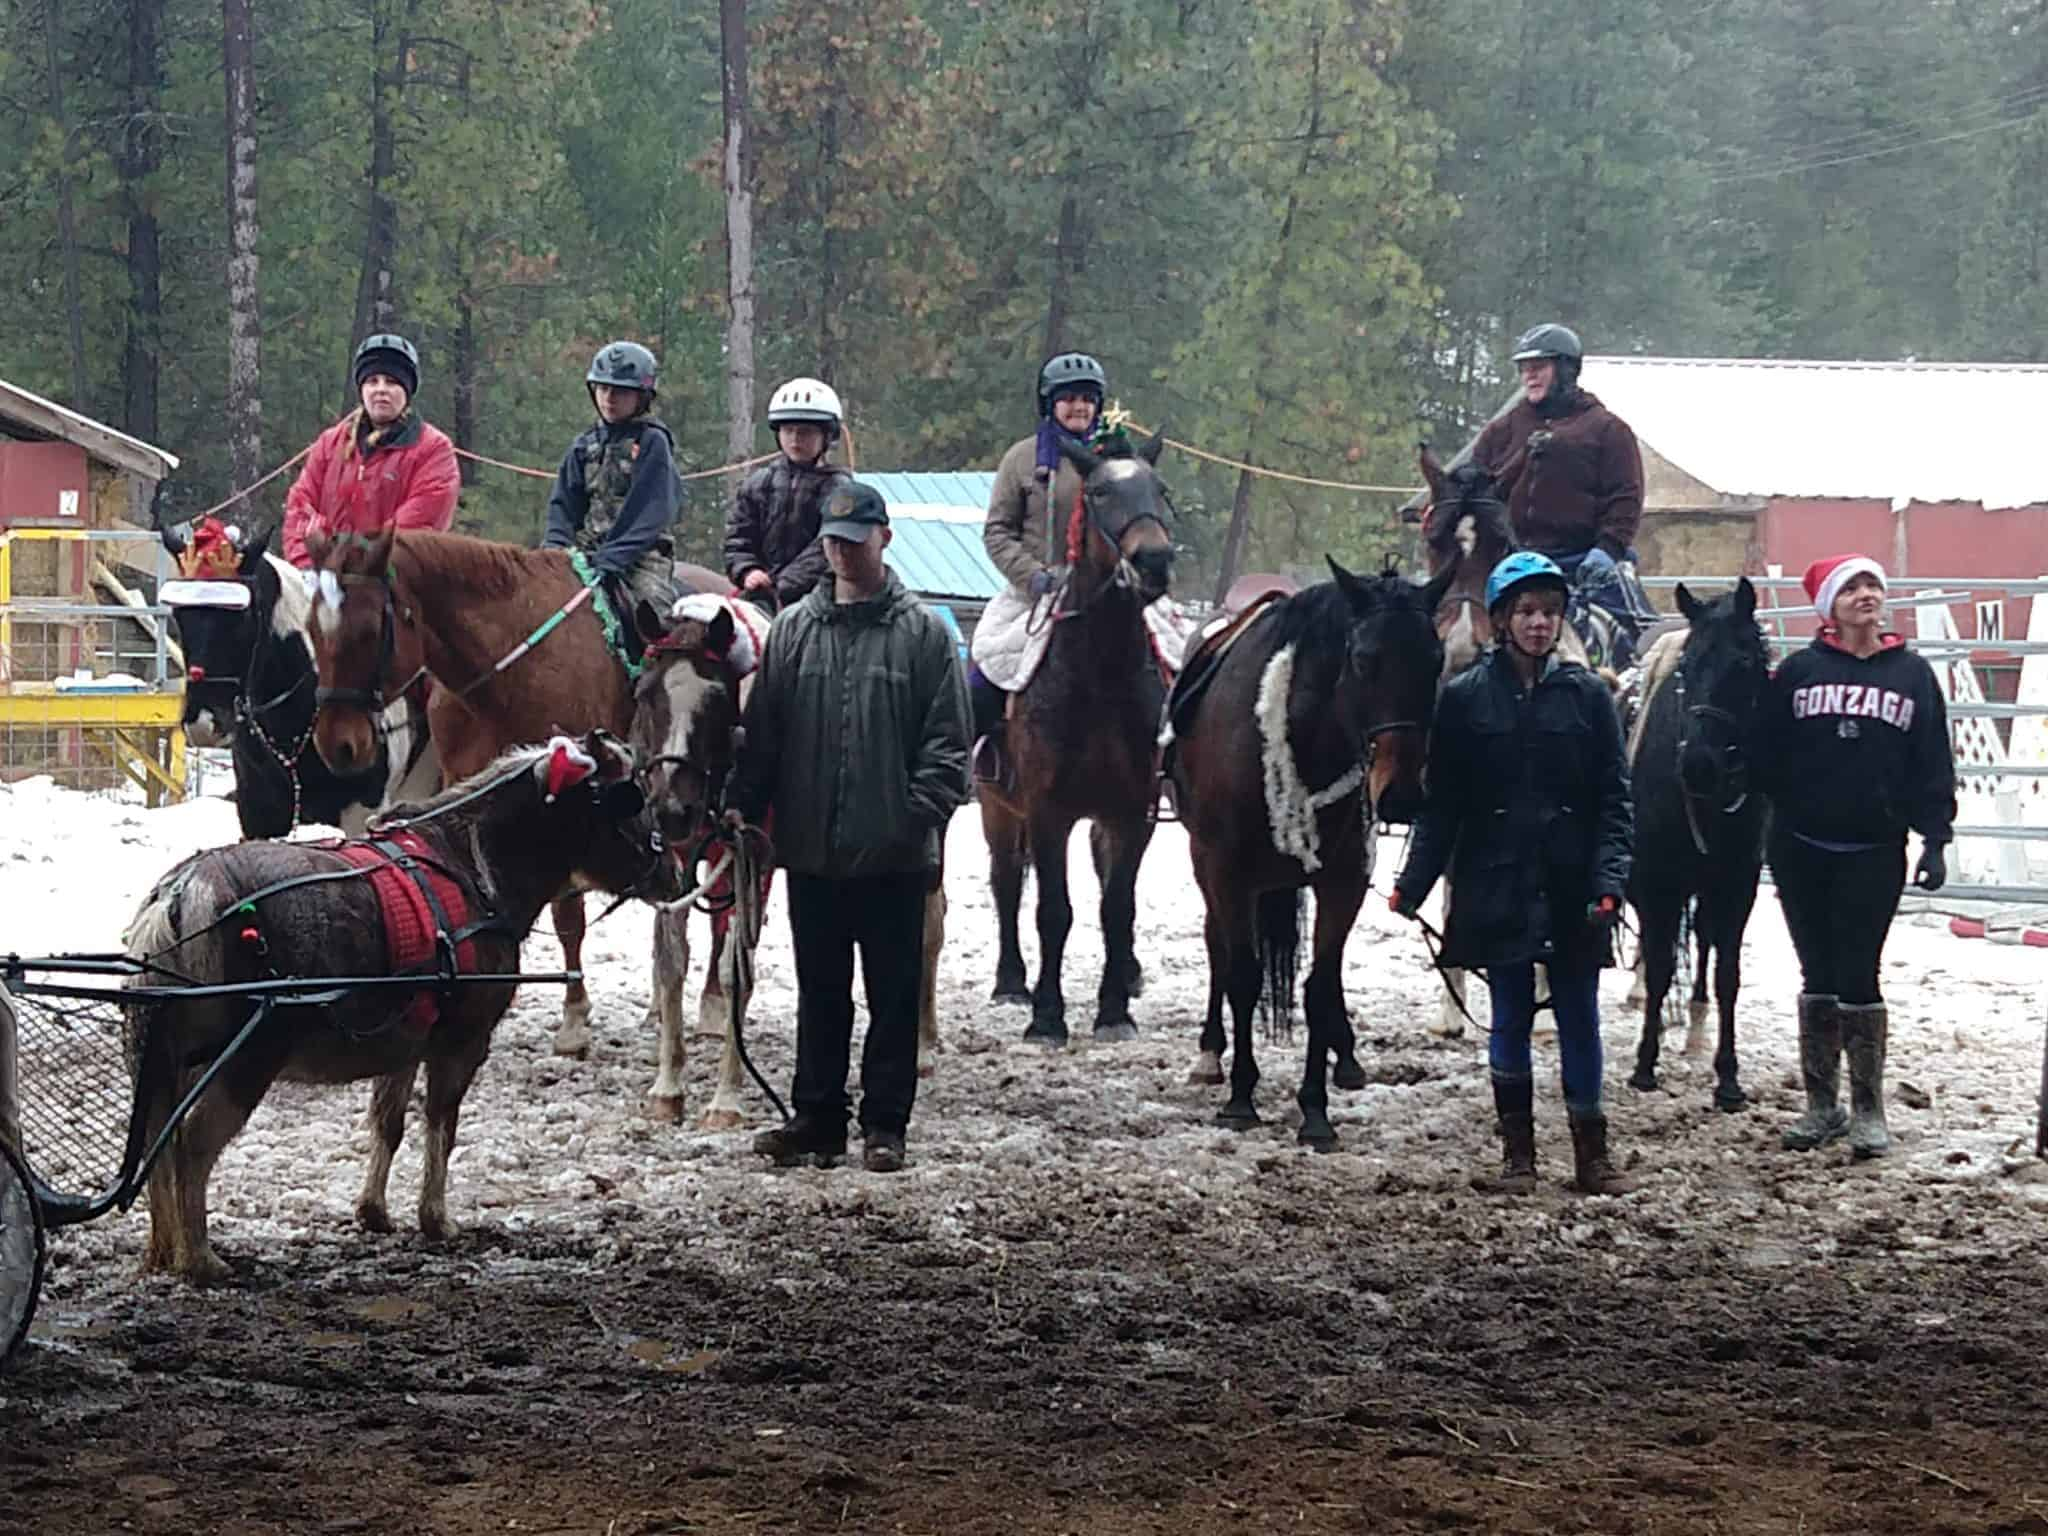 The Legacy Farm and Stable Horse Caroler braving rain and ice to spread some holiday cheer